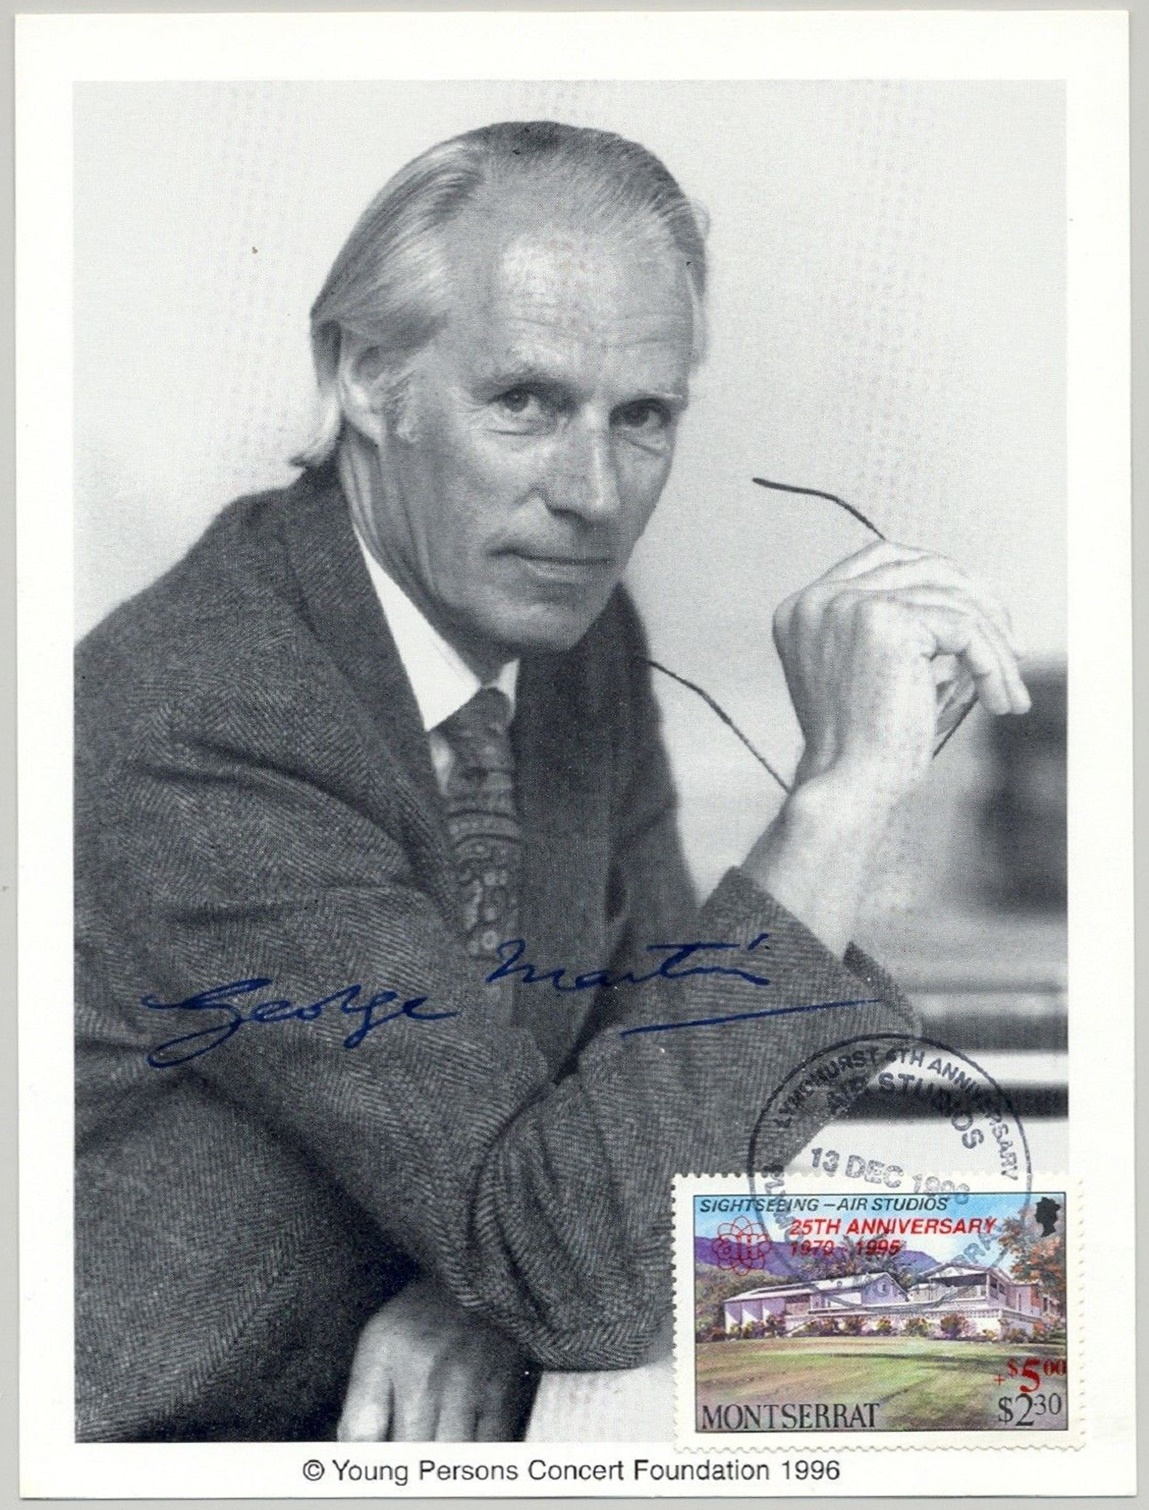 Montserrat - Scott #462 (1986) with unlisted (1995?) overprint on photograph picturing Sir George Martin.